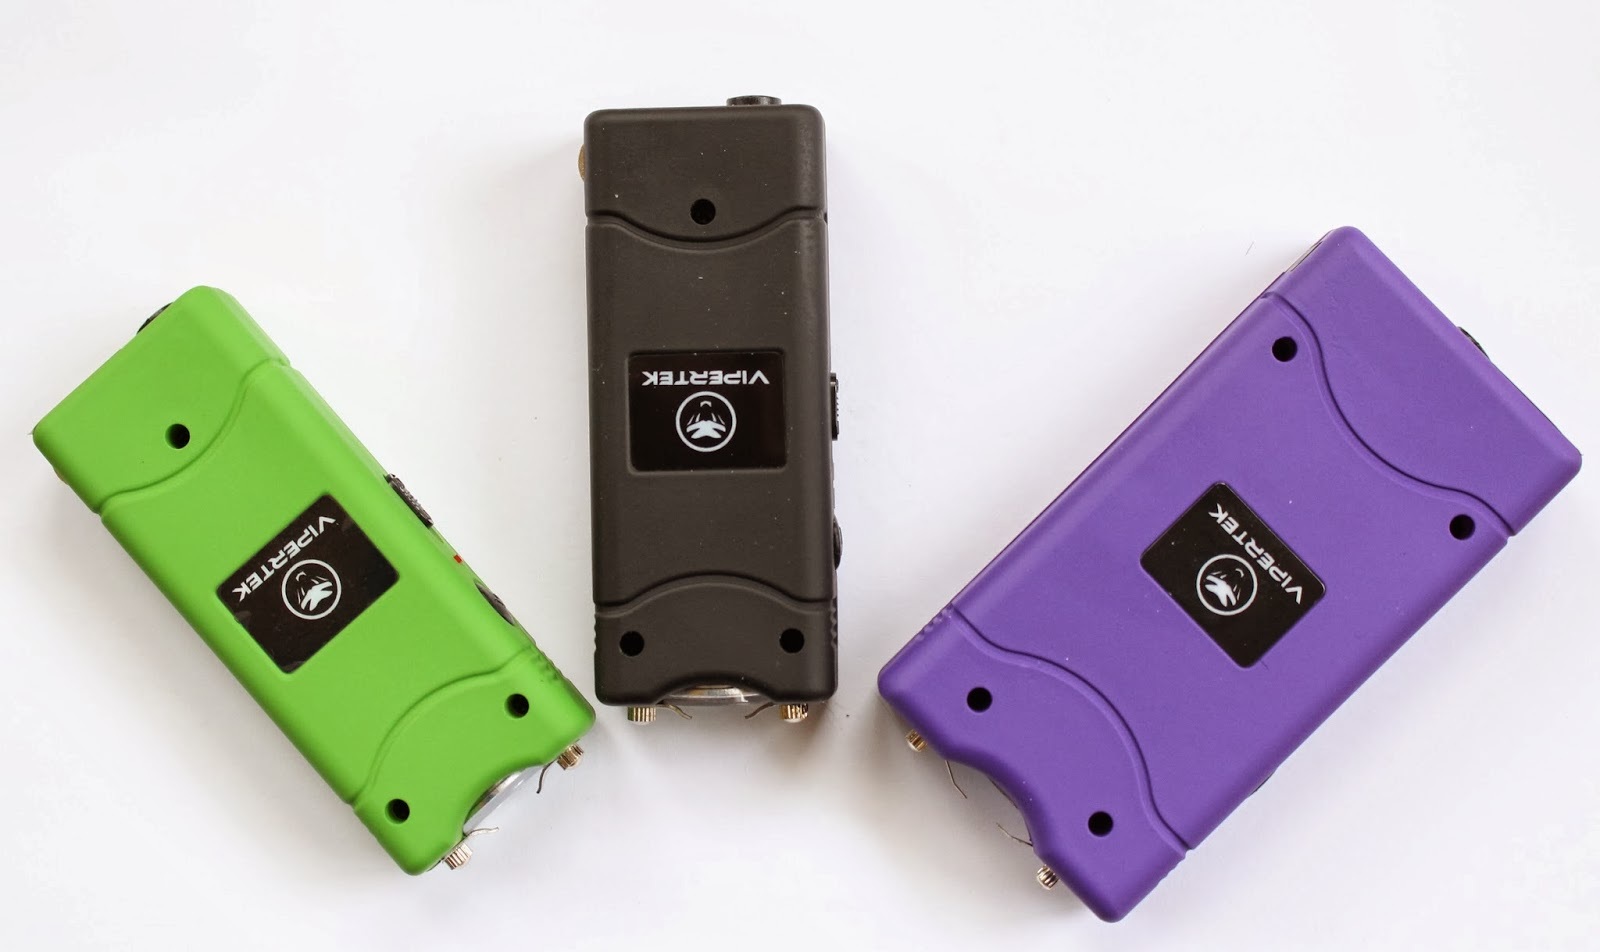 Vipertek VTS-880 and VTS-881 Stun Guns: Top View